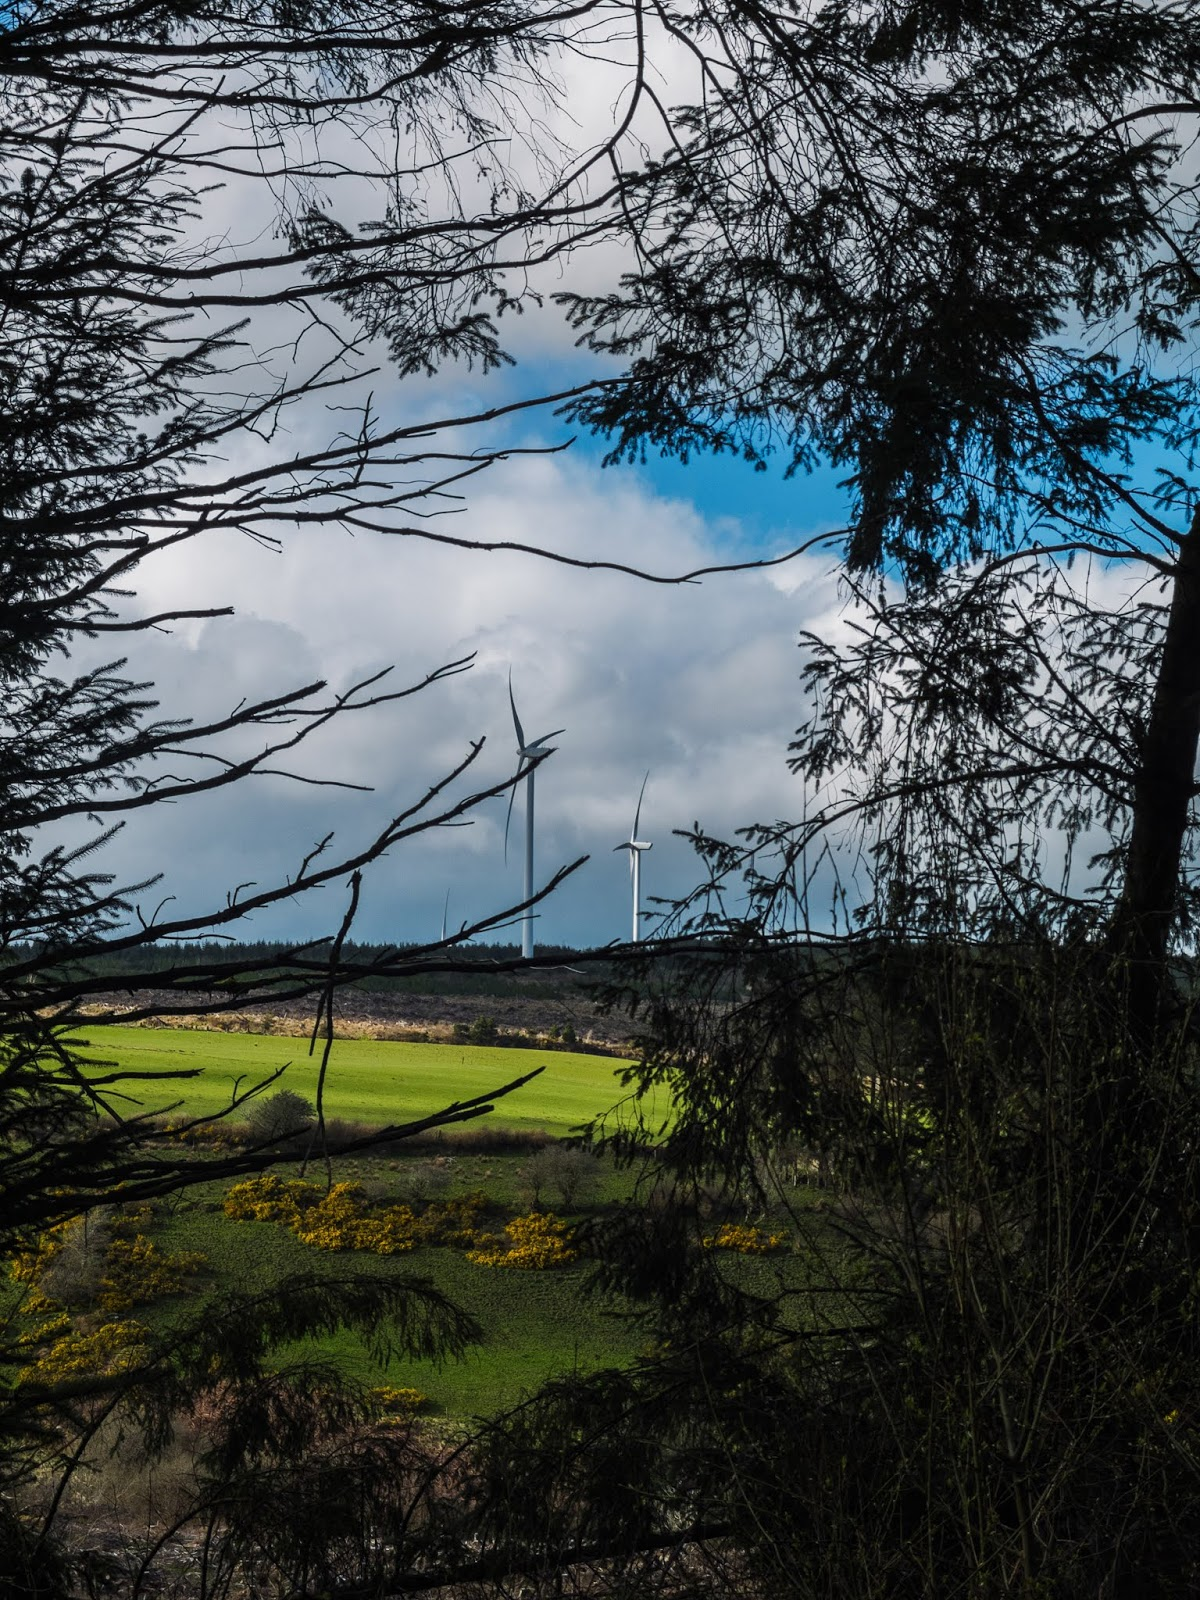 A view of two windmills on top of a hillside through conifer trees in Boggeragh Mountains, North Cork.